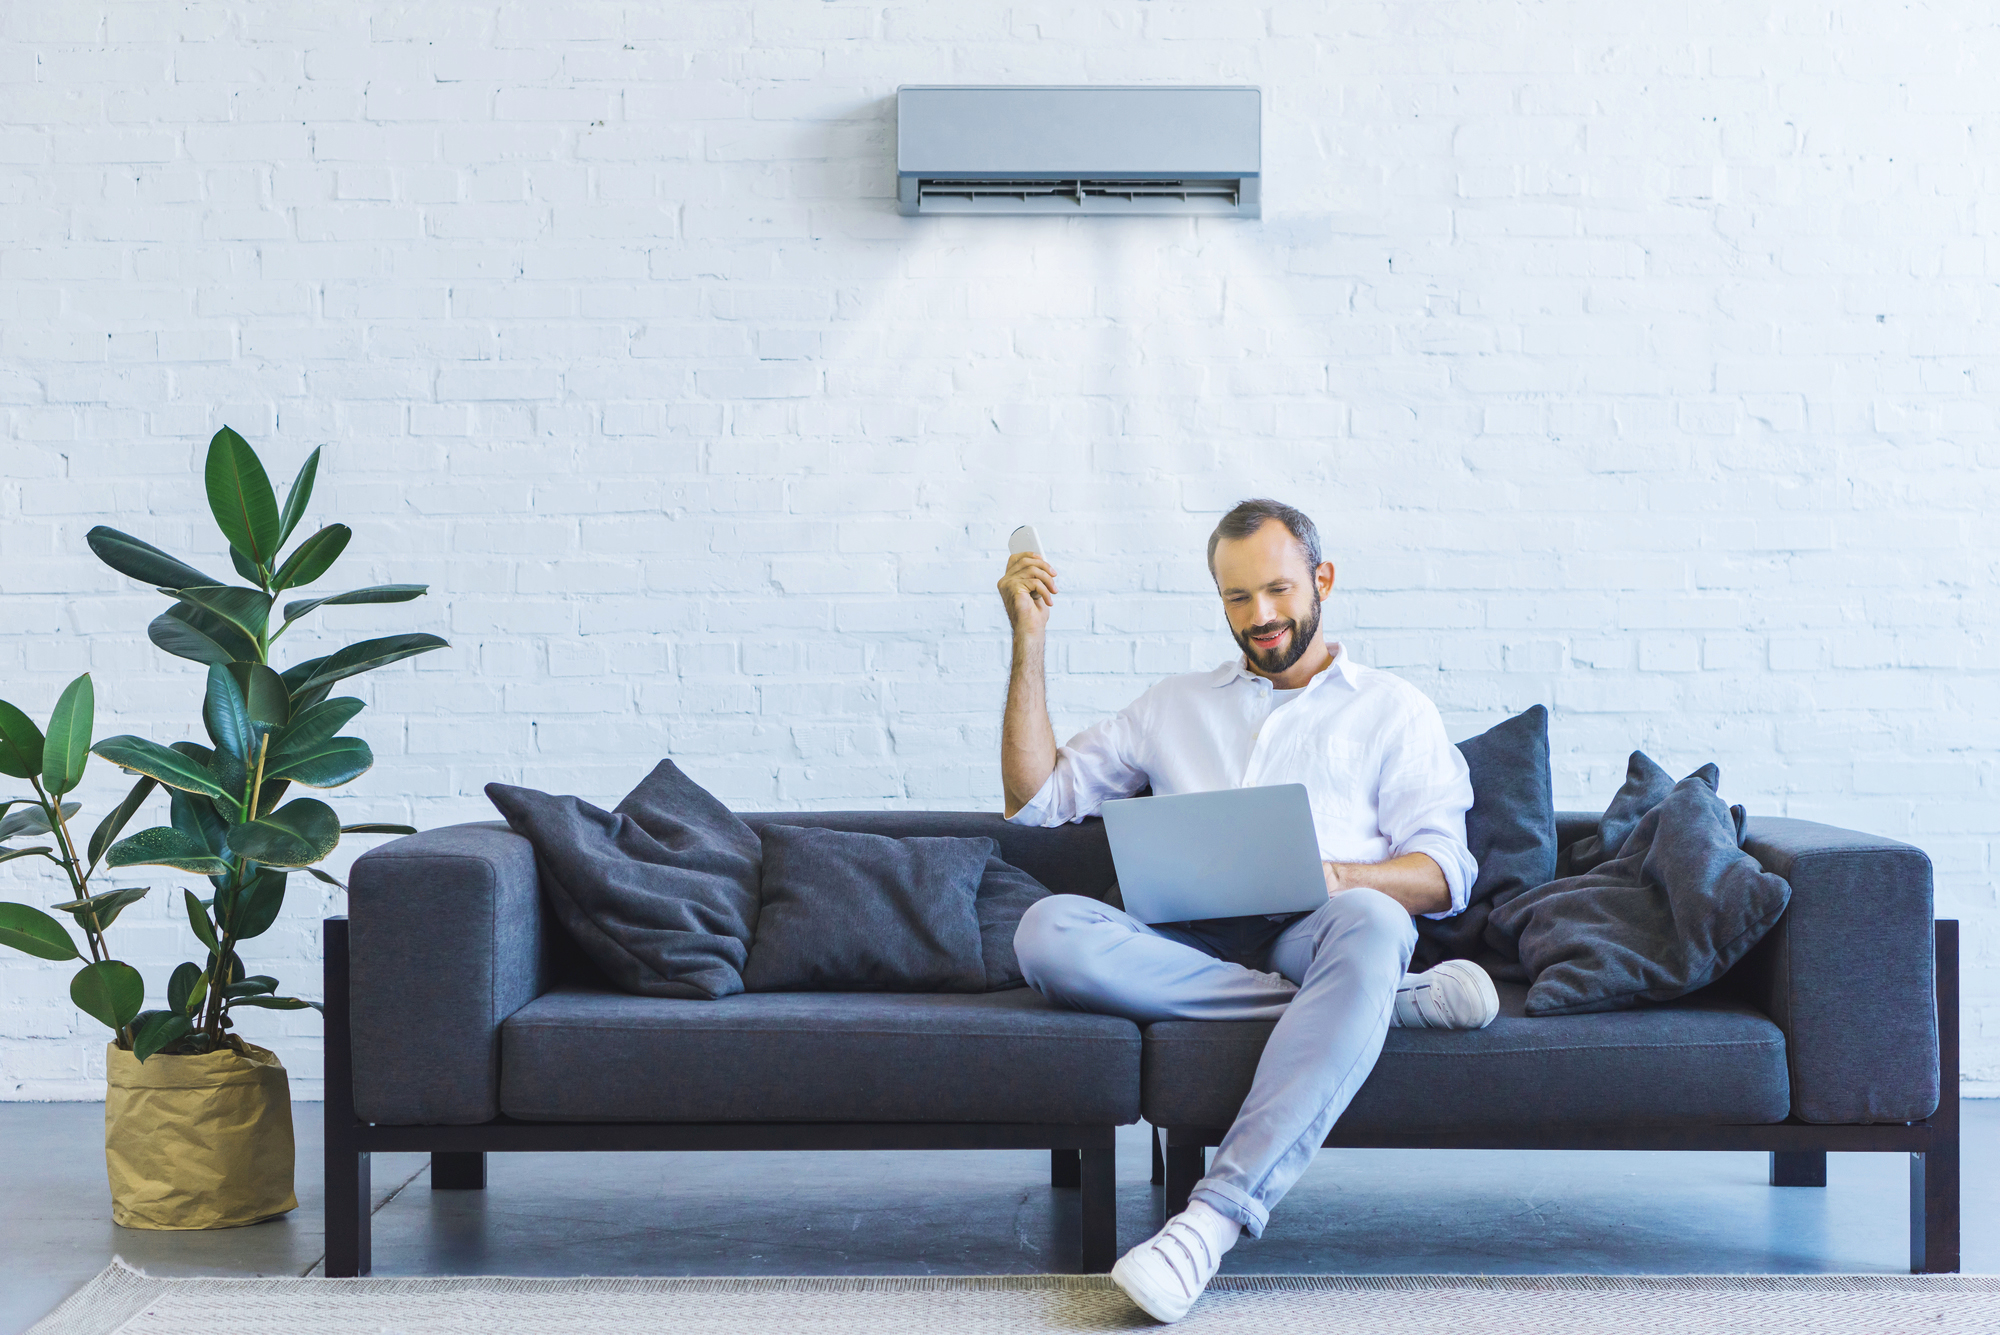 Save on your Air conditioning bill amid the scorching heat wave